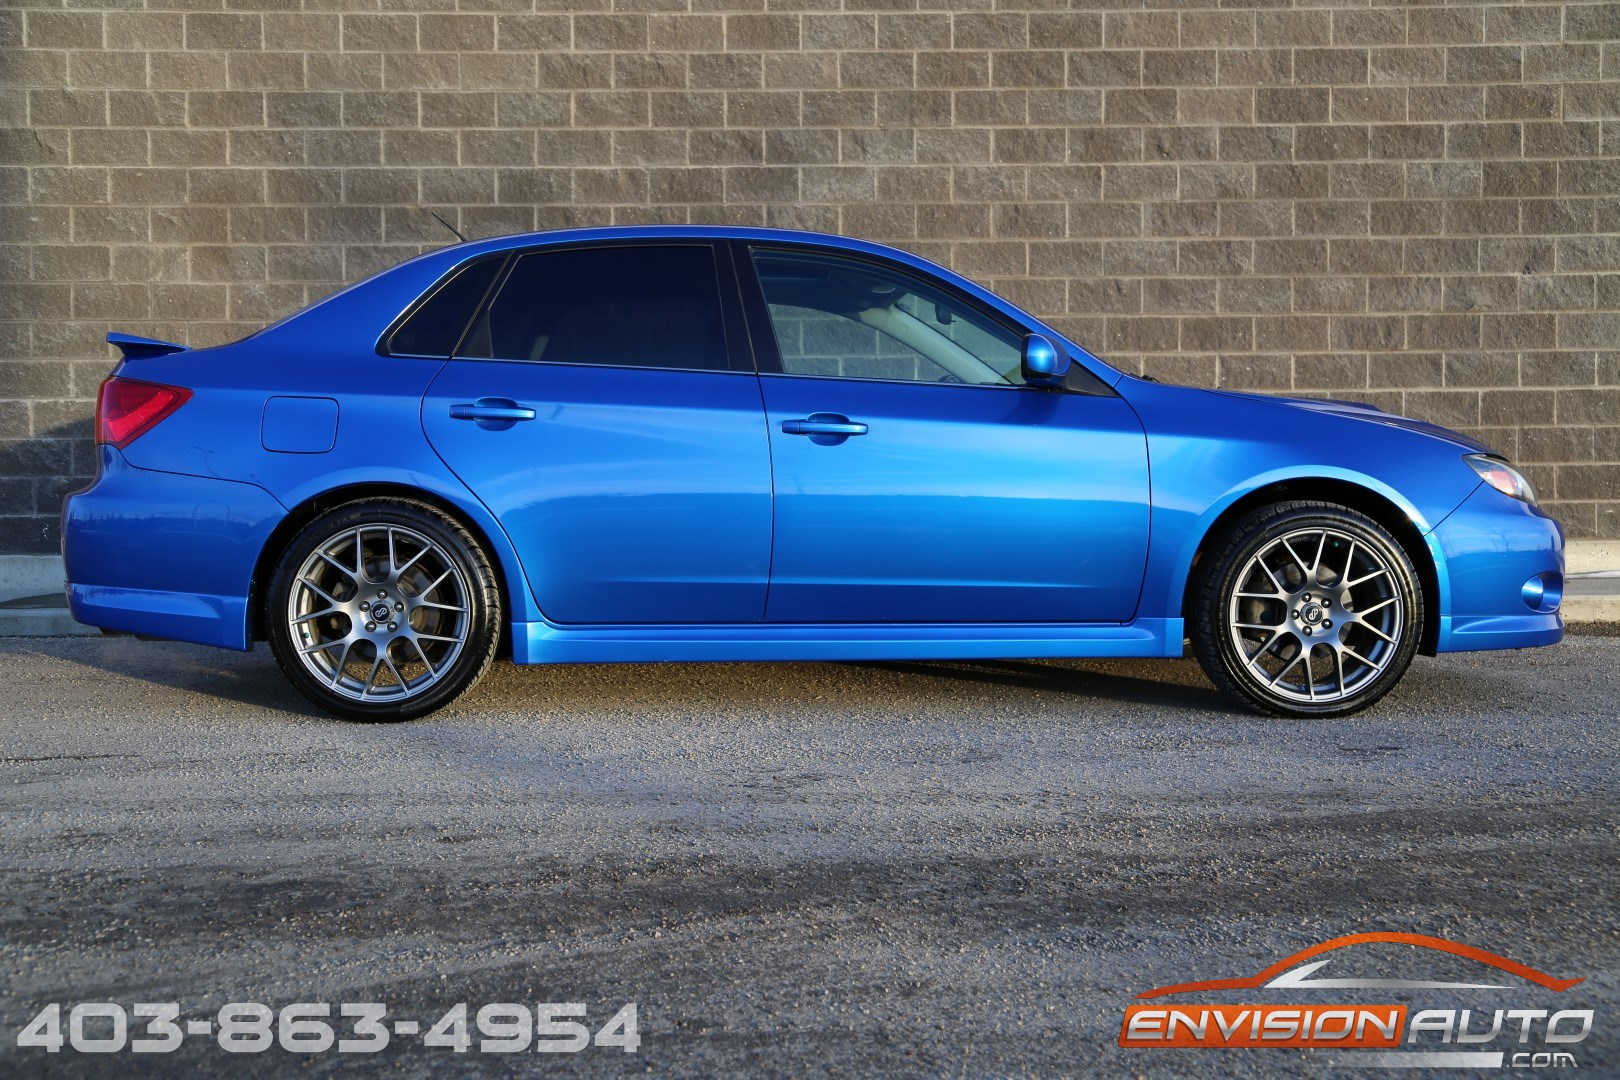 2009 Subaru Impreza Wrx 265 Cobb Tuned Rally Rocket